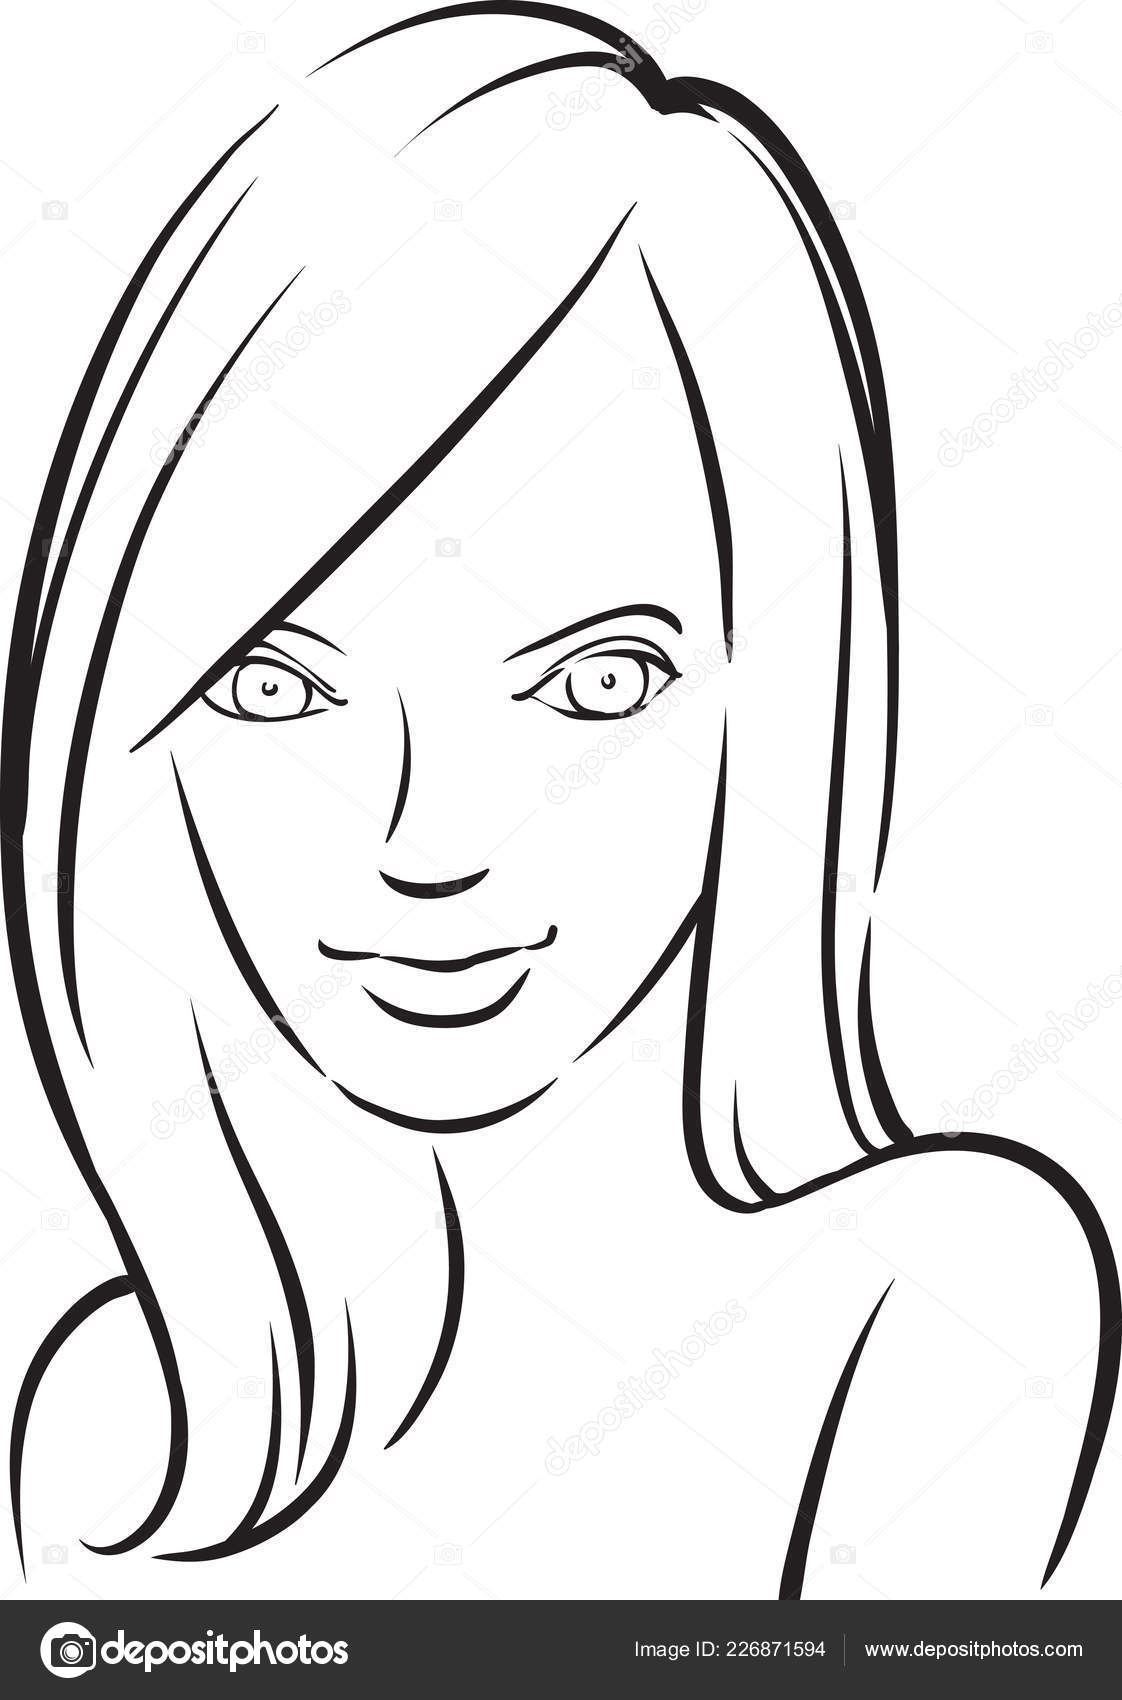 Whiteboard drawing beautiful smiling woman easy edit layered vector eps10 stock vector